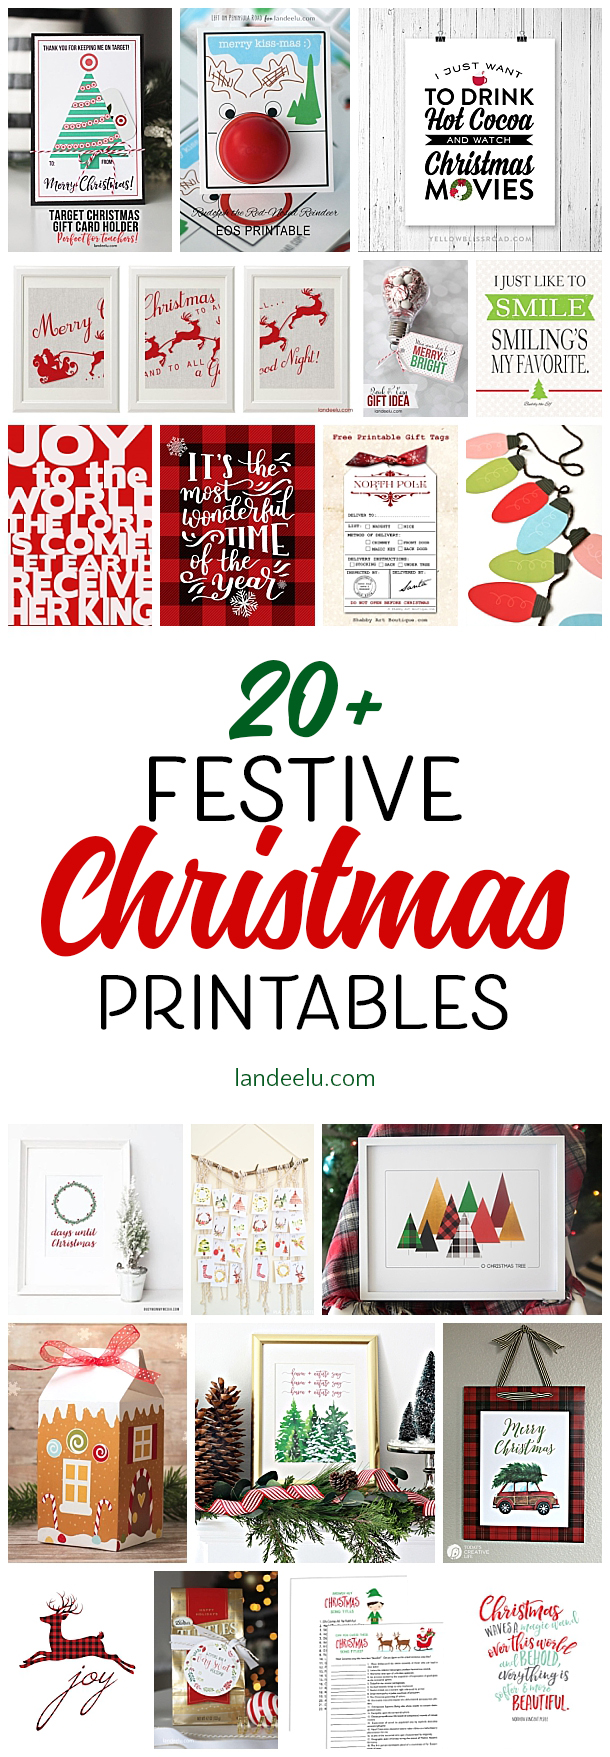 Make the holidays easier on yourself and download some awesome free Christmas printables!